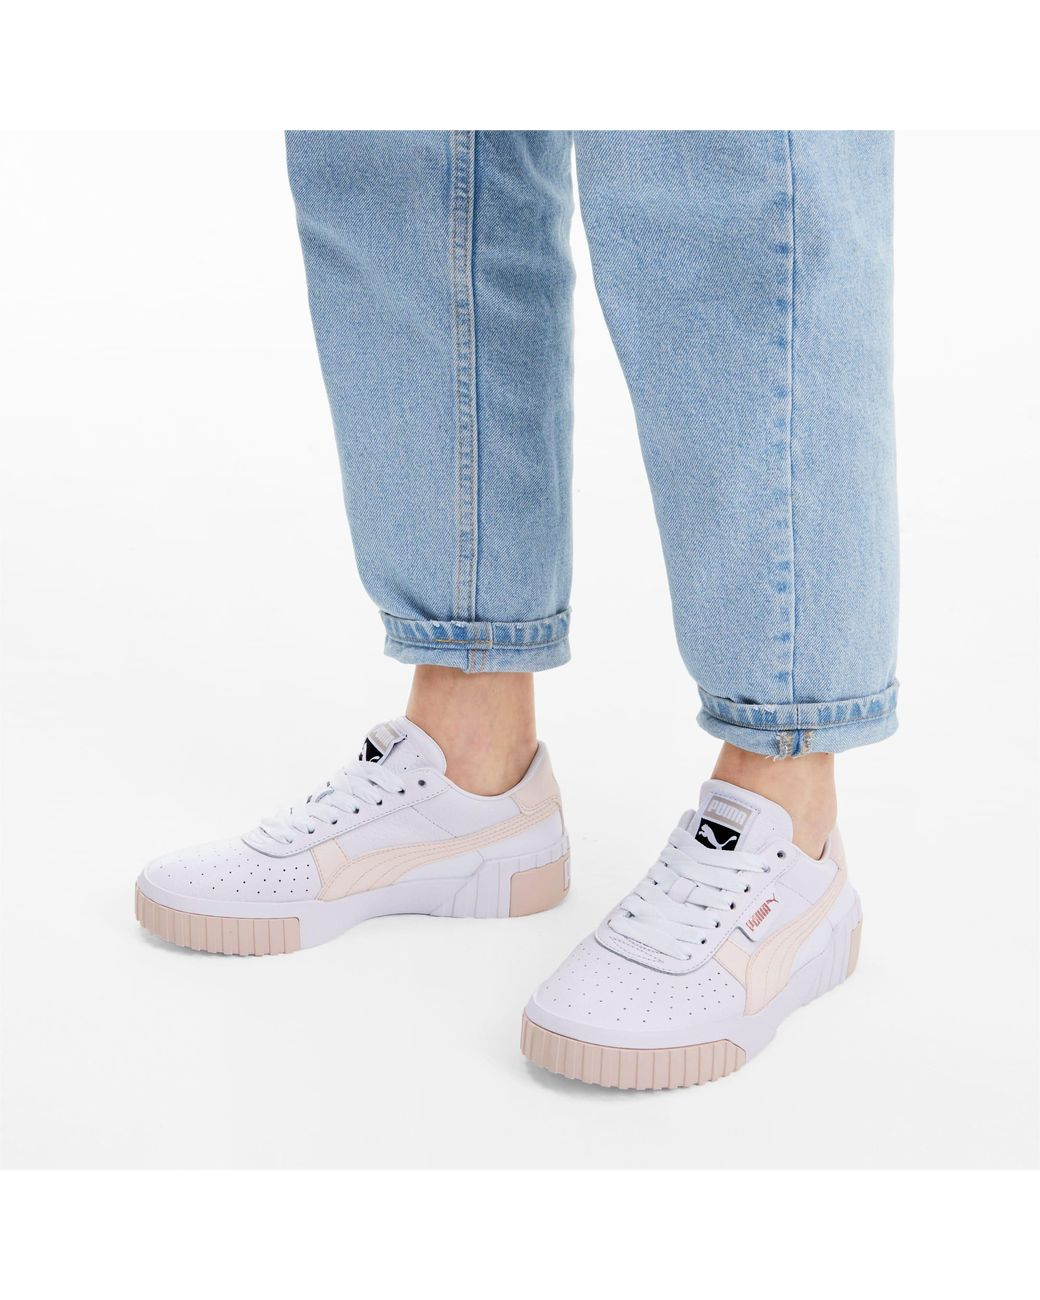 PUMA Leather Cali Women's Sneakers in White Lyst